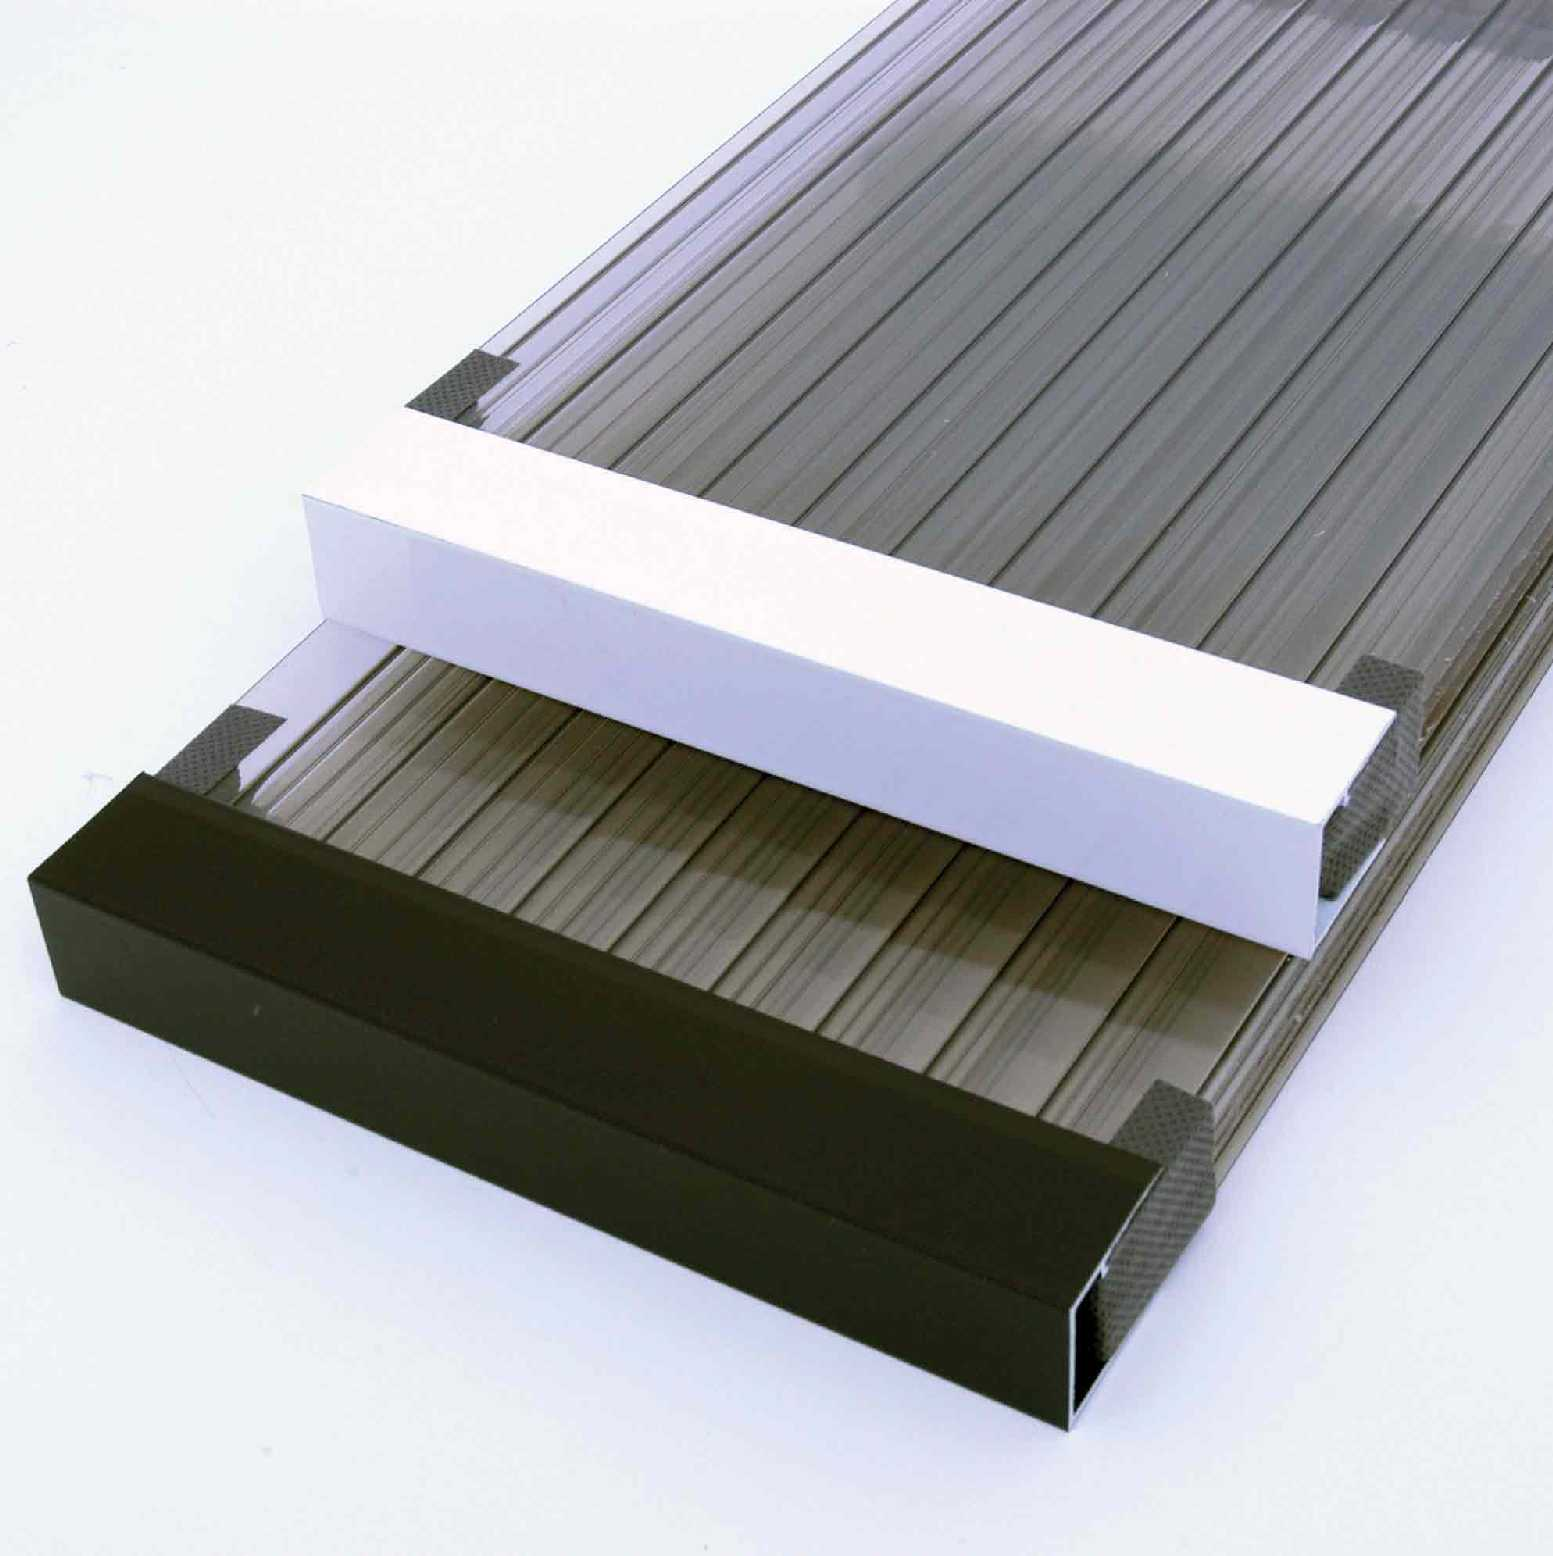 uPVC Sheet Closures for 25mm thick glazing, 2.1m